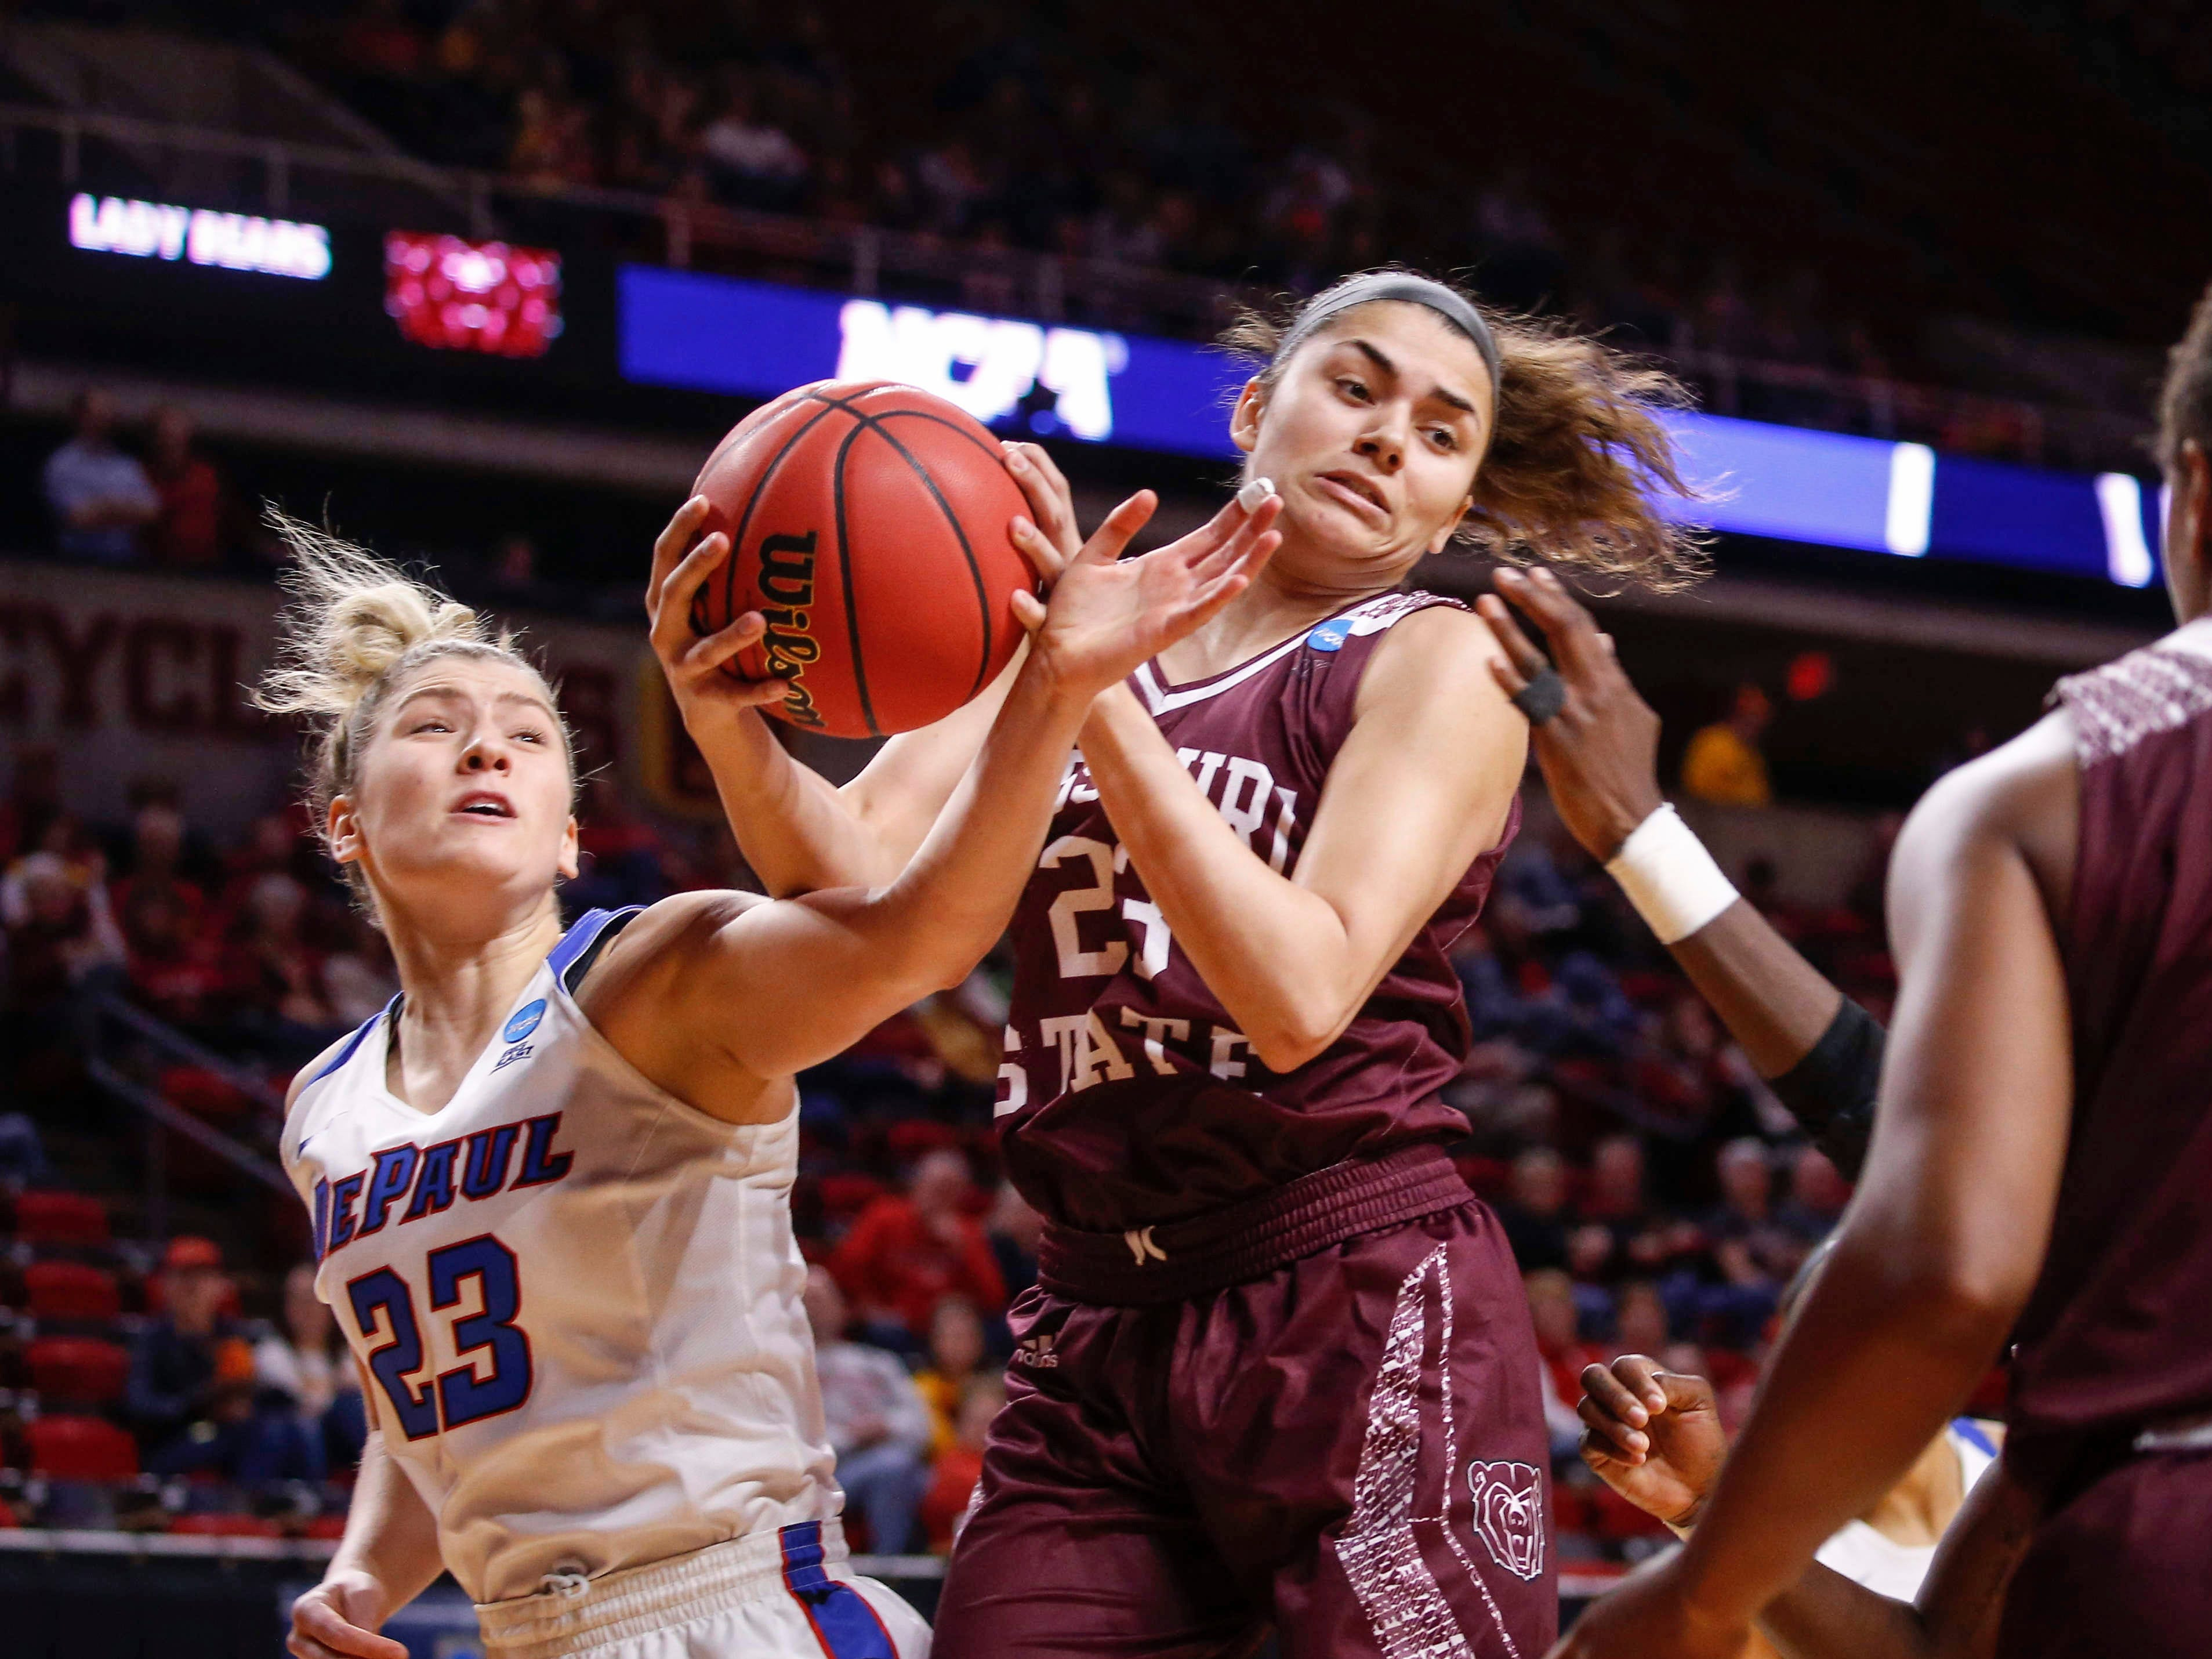 Missouri State freshman Mya Bhinhar pulls down a defensive rebound against DePaul on Saturday, March 23, 2019, at Hilton Coliseum in Ames.